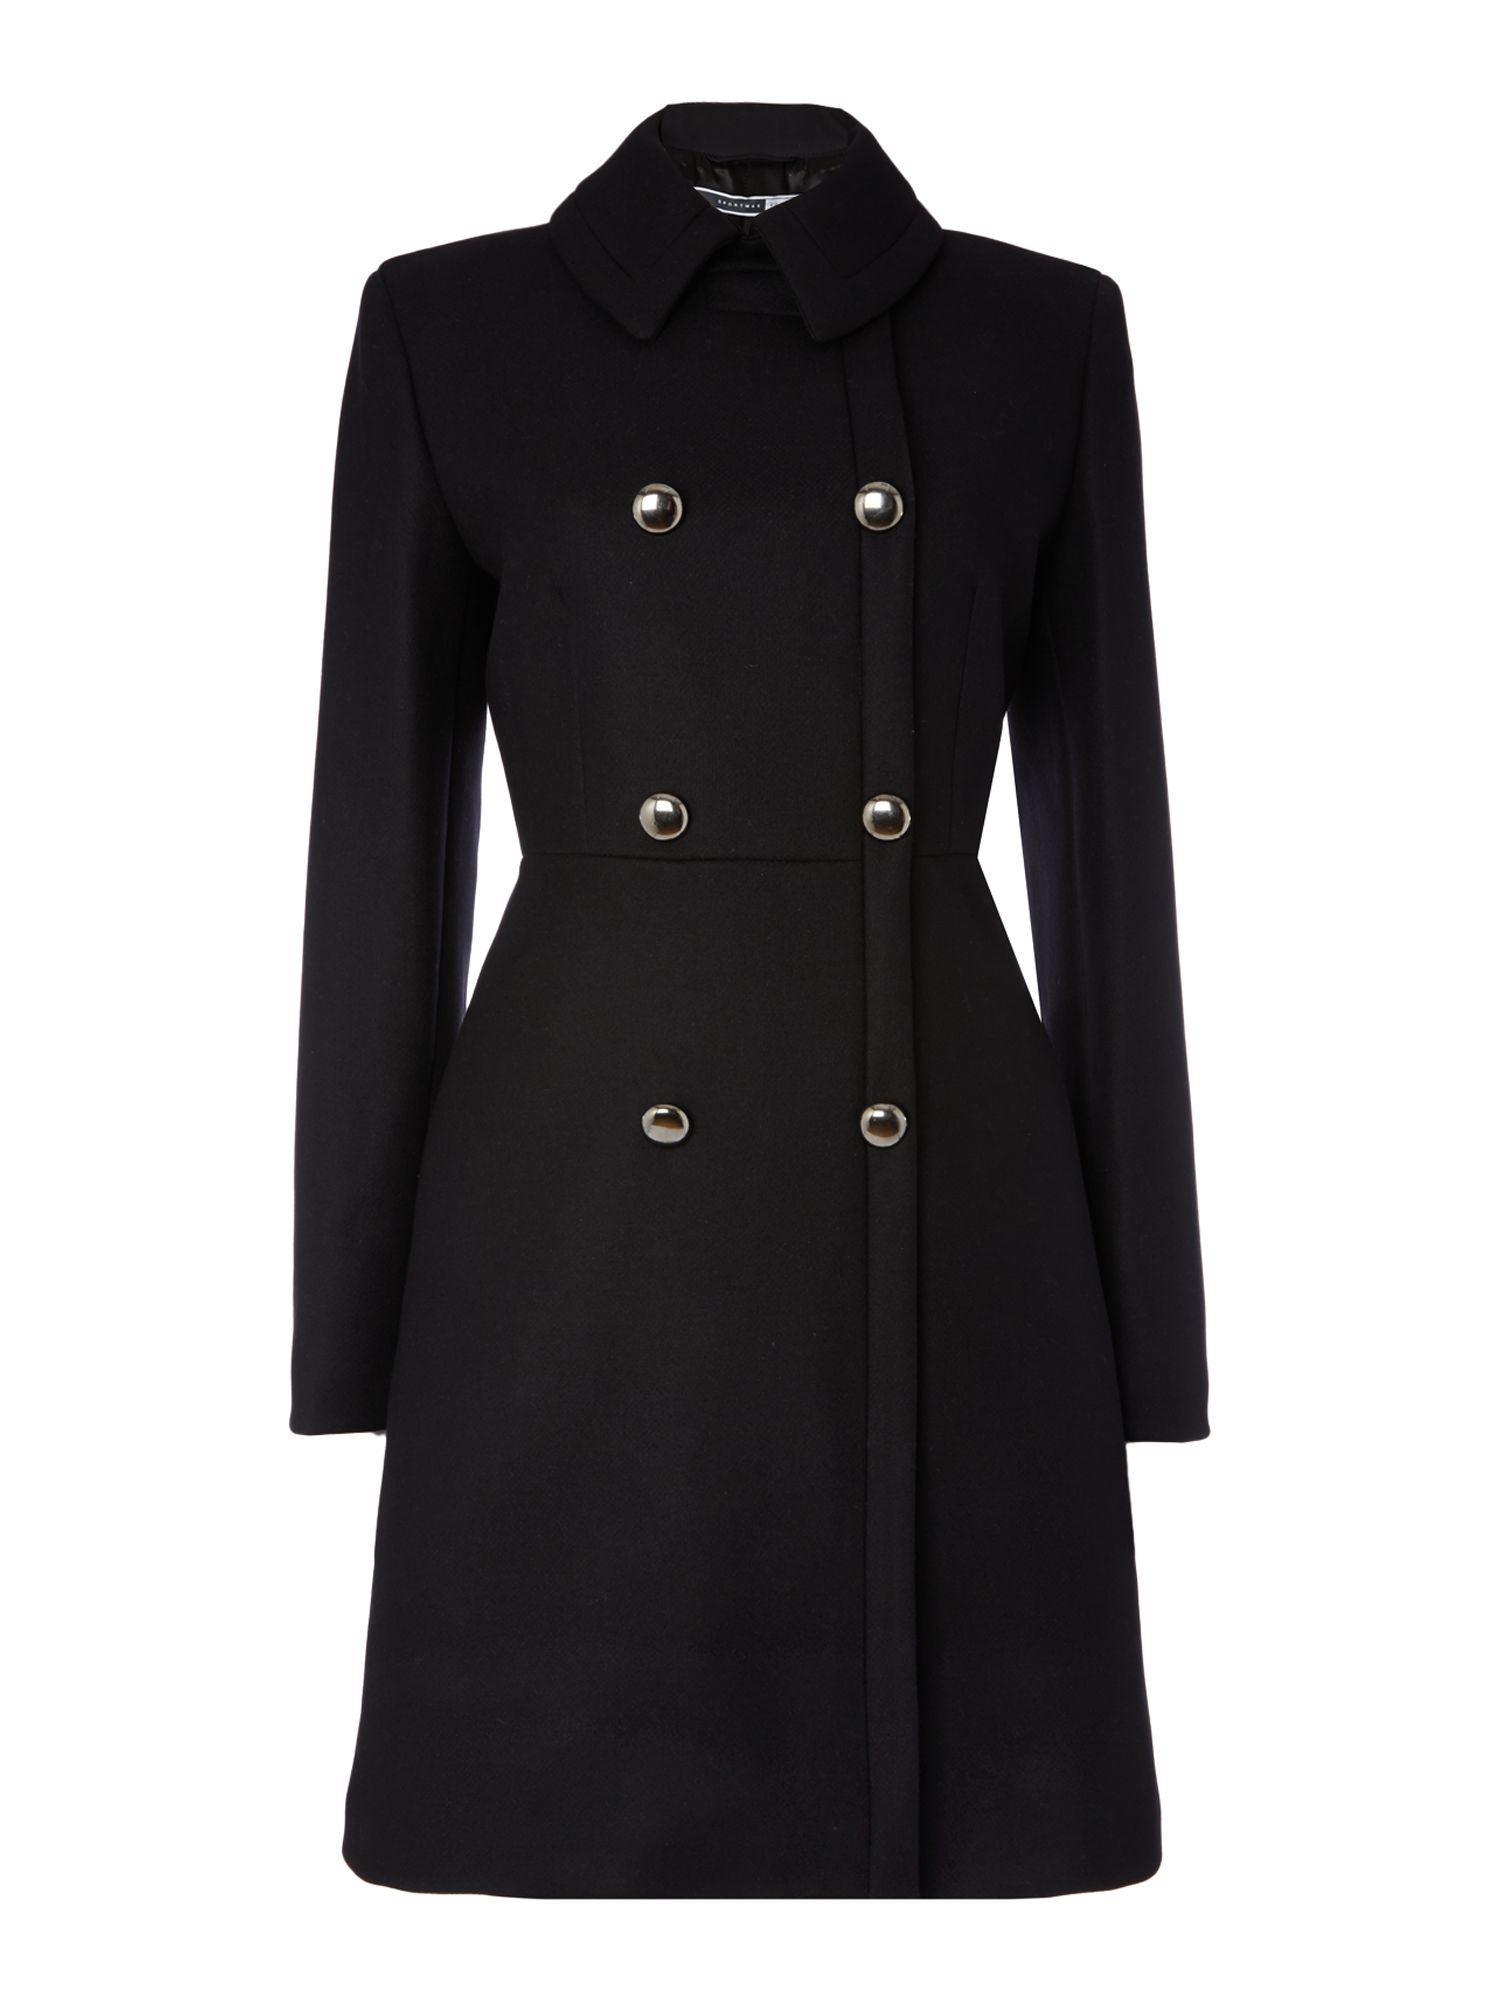 Sportmax code Todi Double Breasted Wool Coat in Black | Lyst